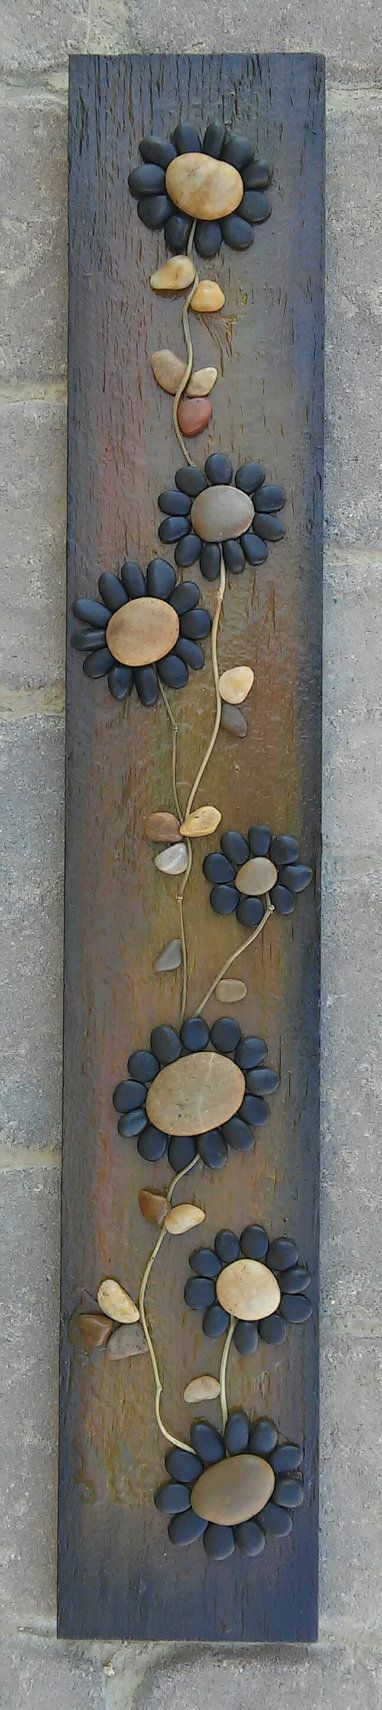 Original pebble/rock art (string of beautiful black flowers) handmade from all natural materials including reclaimed wood, pebbles, twigs